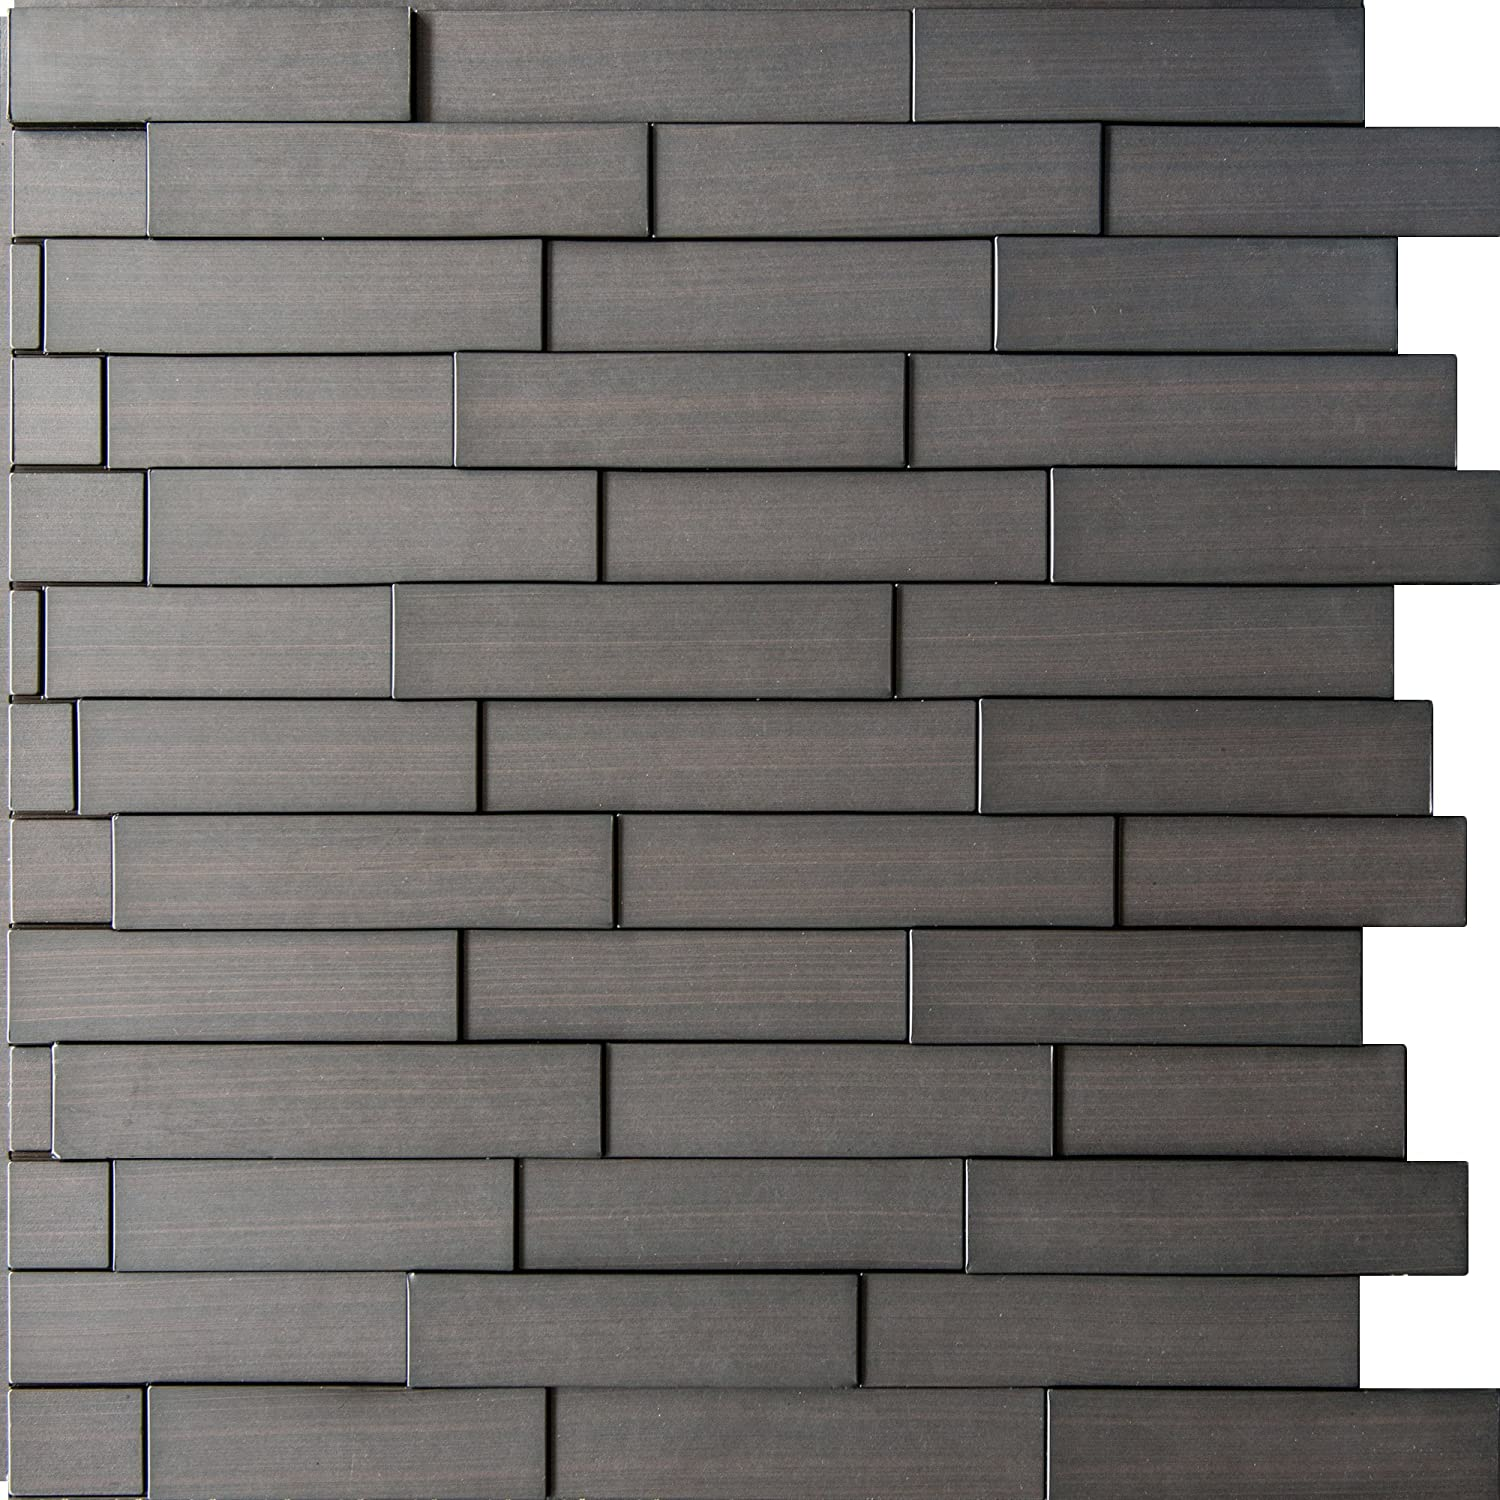 Piano Steps 3D Wall Panels - Interior Design Wall Paneling Decor Commercial And Residential Application